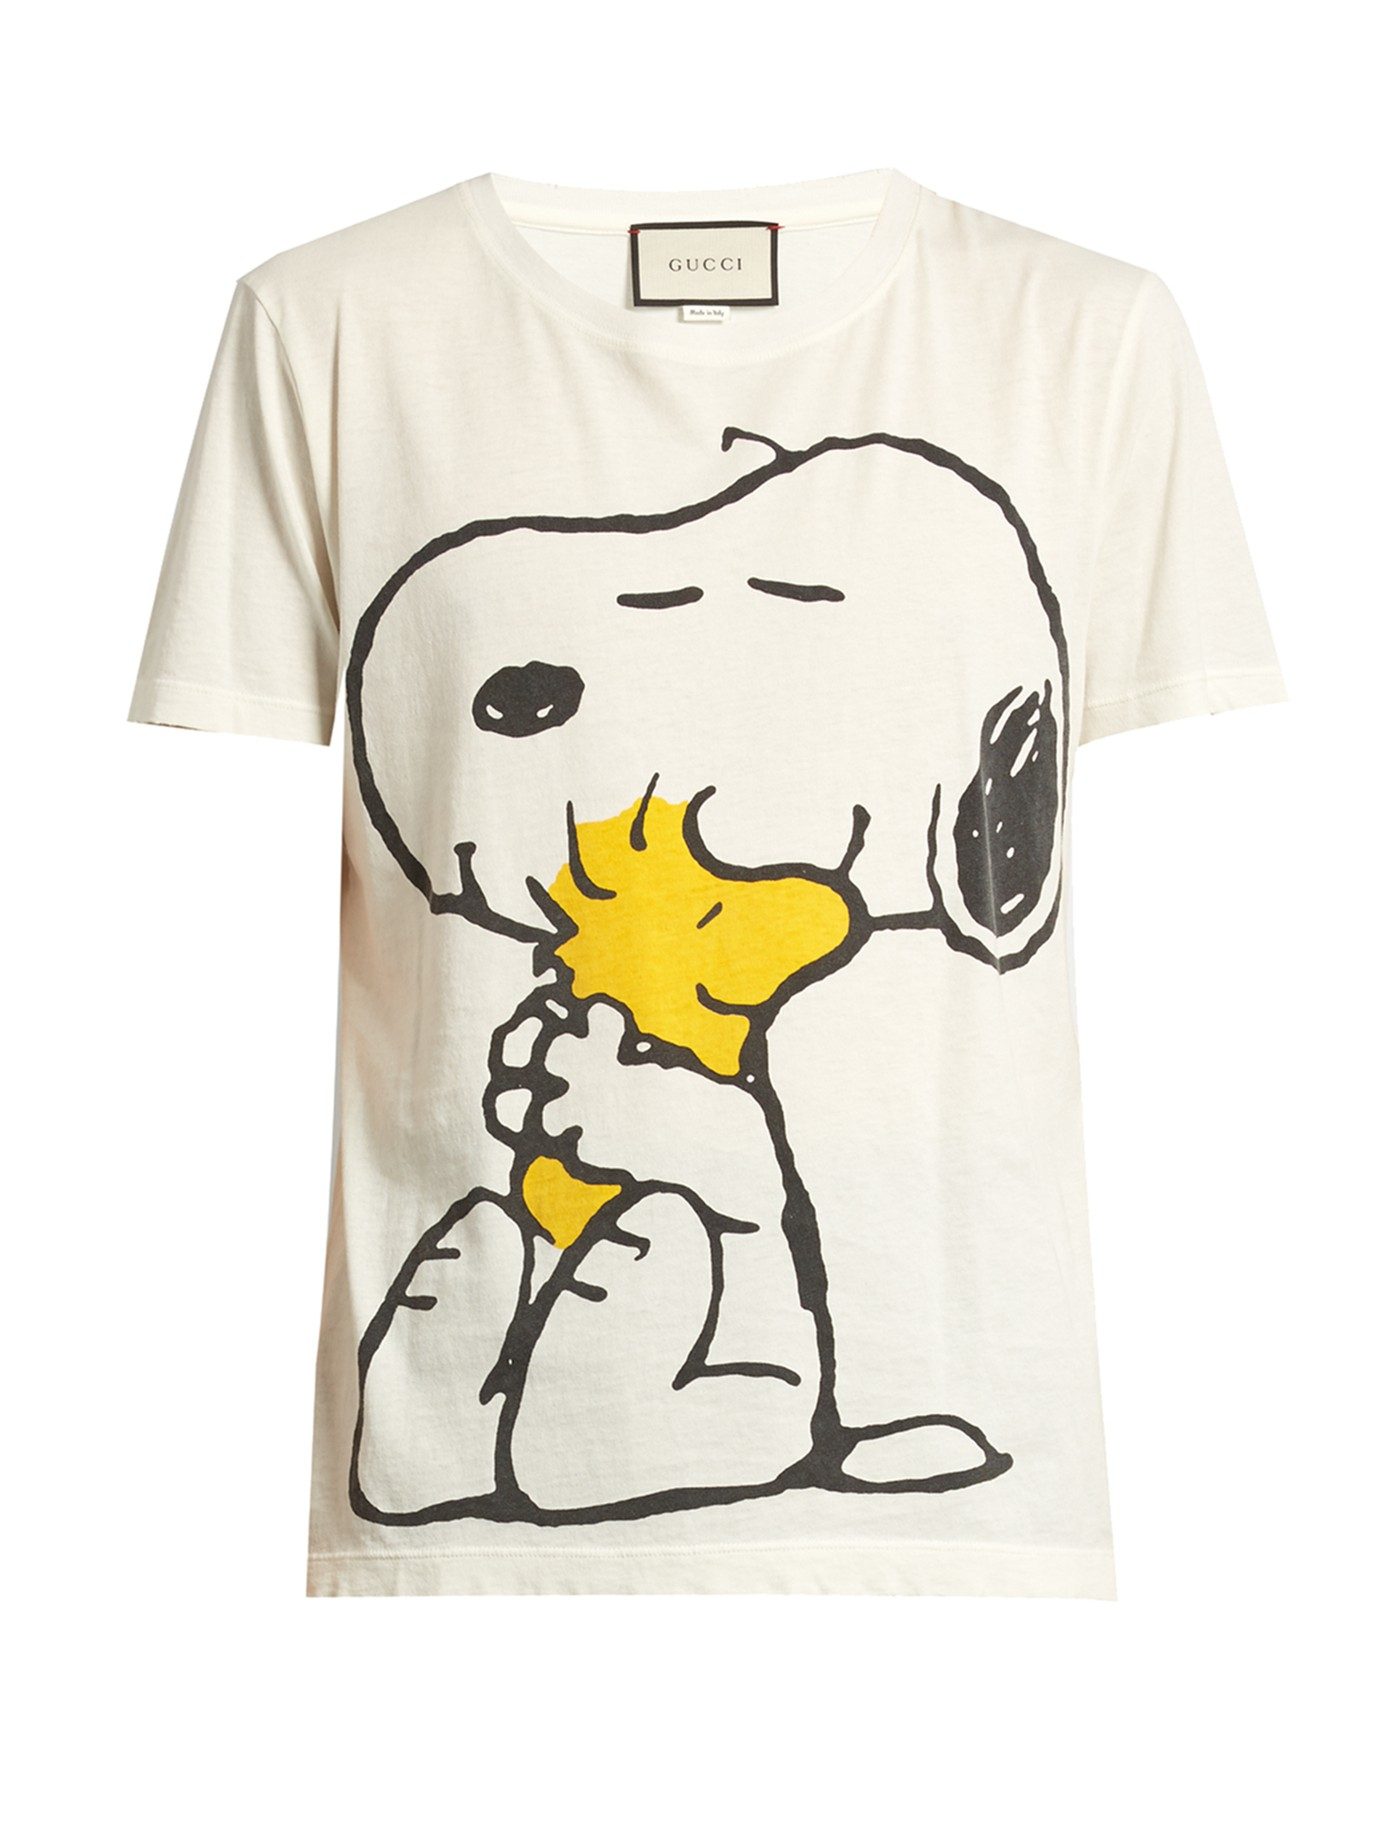 448394f5db31bc Gucci Snoopy And Woodstock-print Cotton T-shirt for Men - Lyst